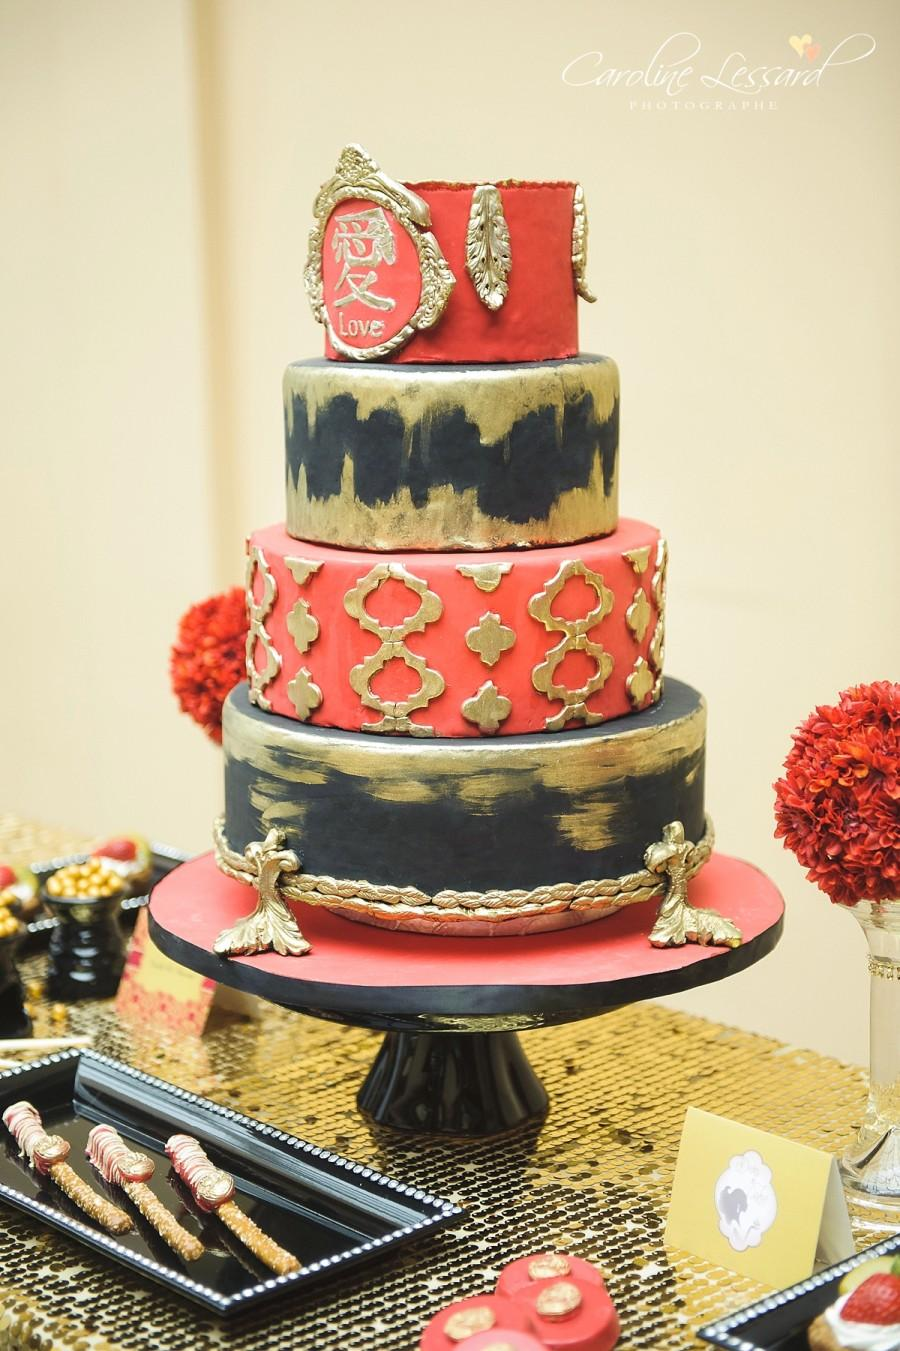 Wedding - Red black and gold wedding cake